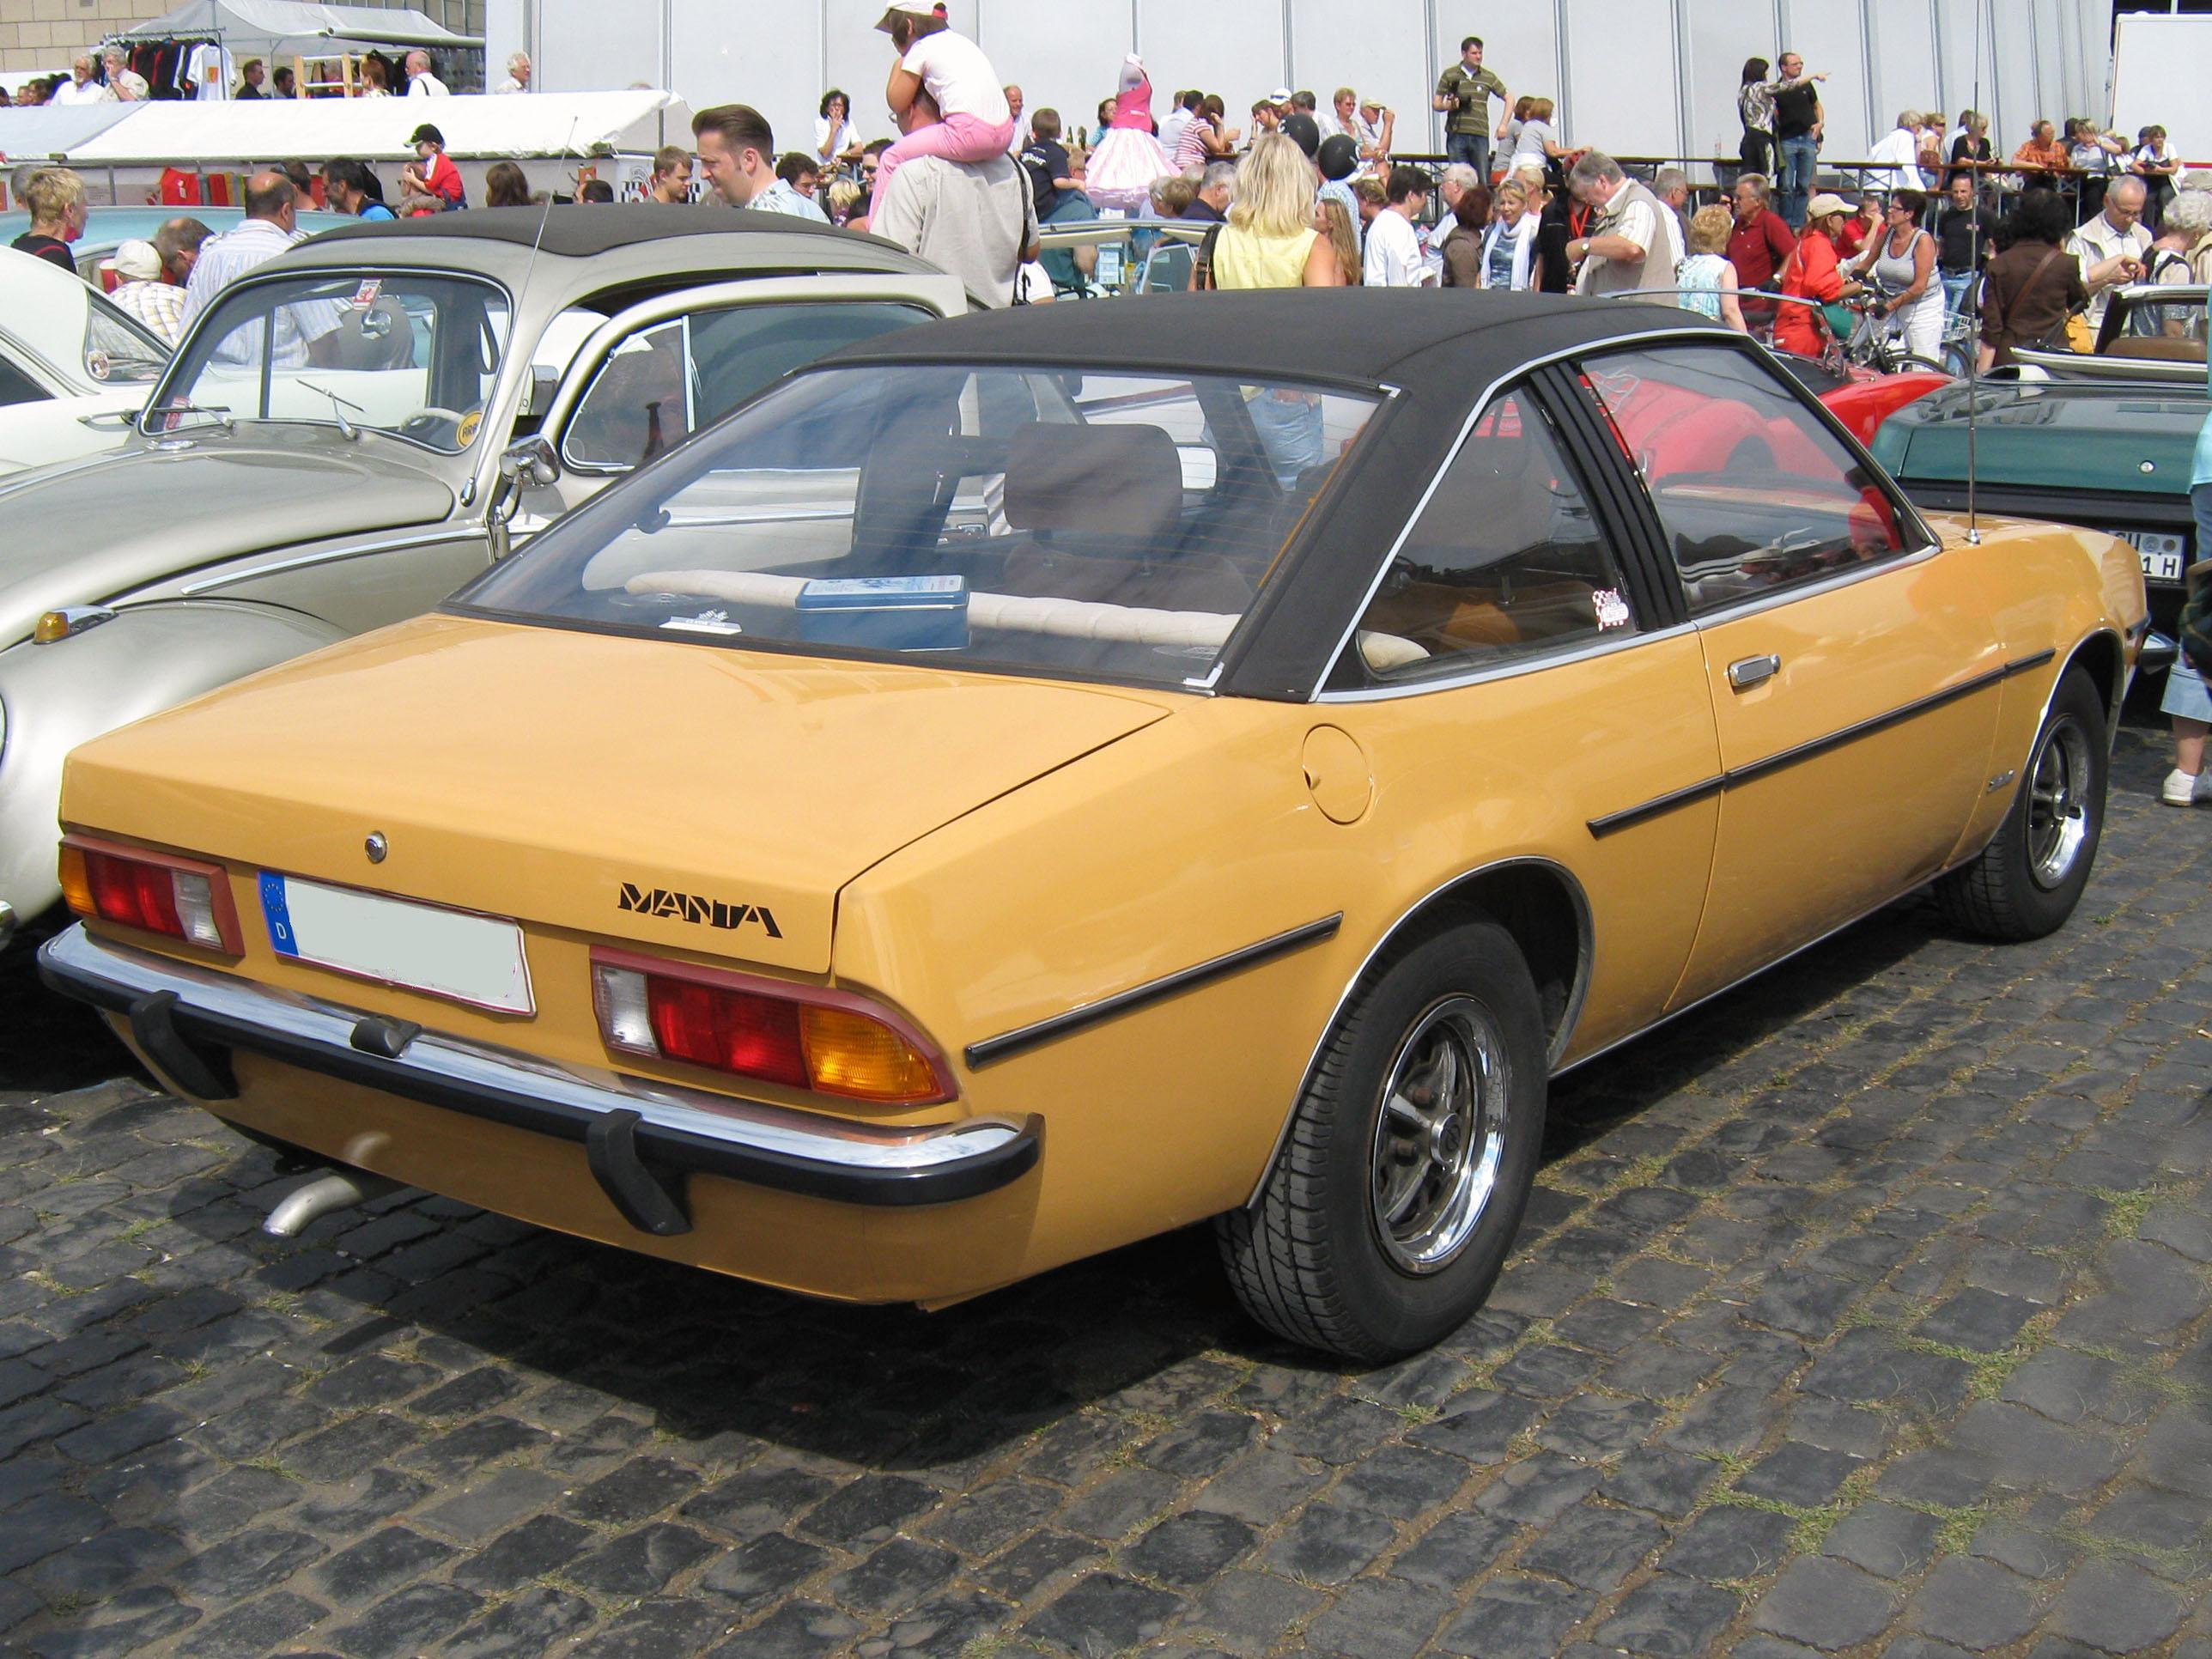 file 1975 opel manta b wikipedia. Black Bedroom Furniture Sets. Home Design Ideas